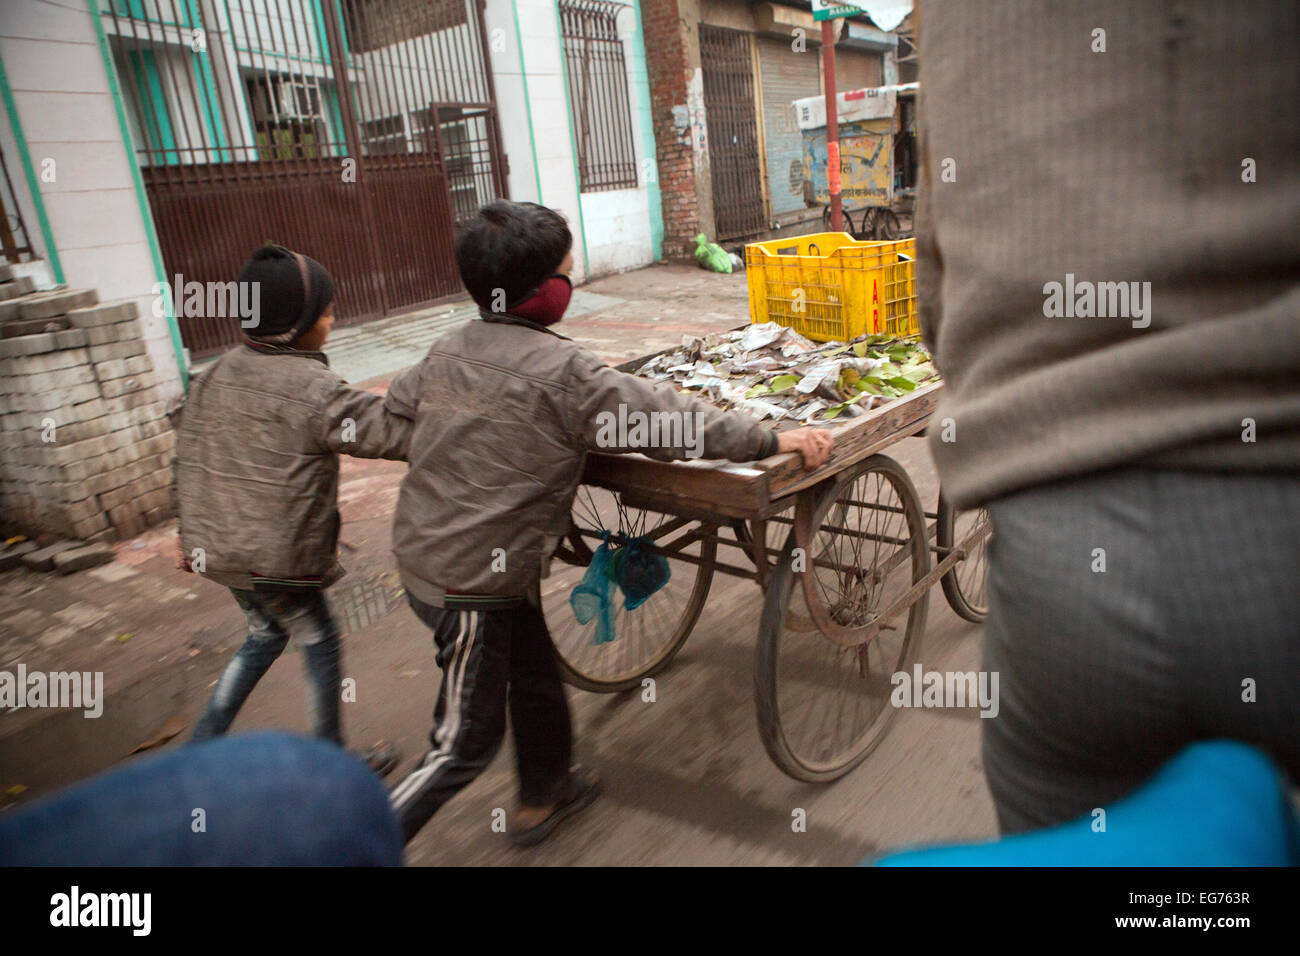 Children pushing a market cart in Lucknow, India. - Stock Image